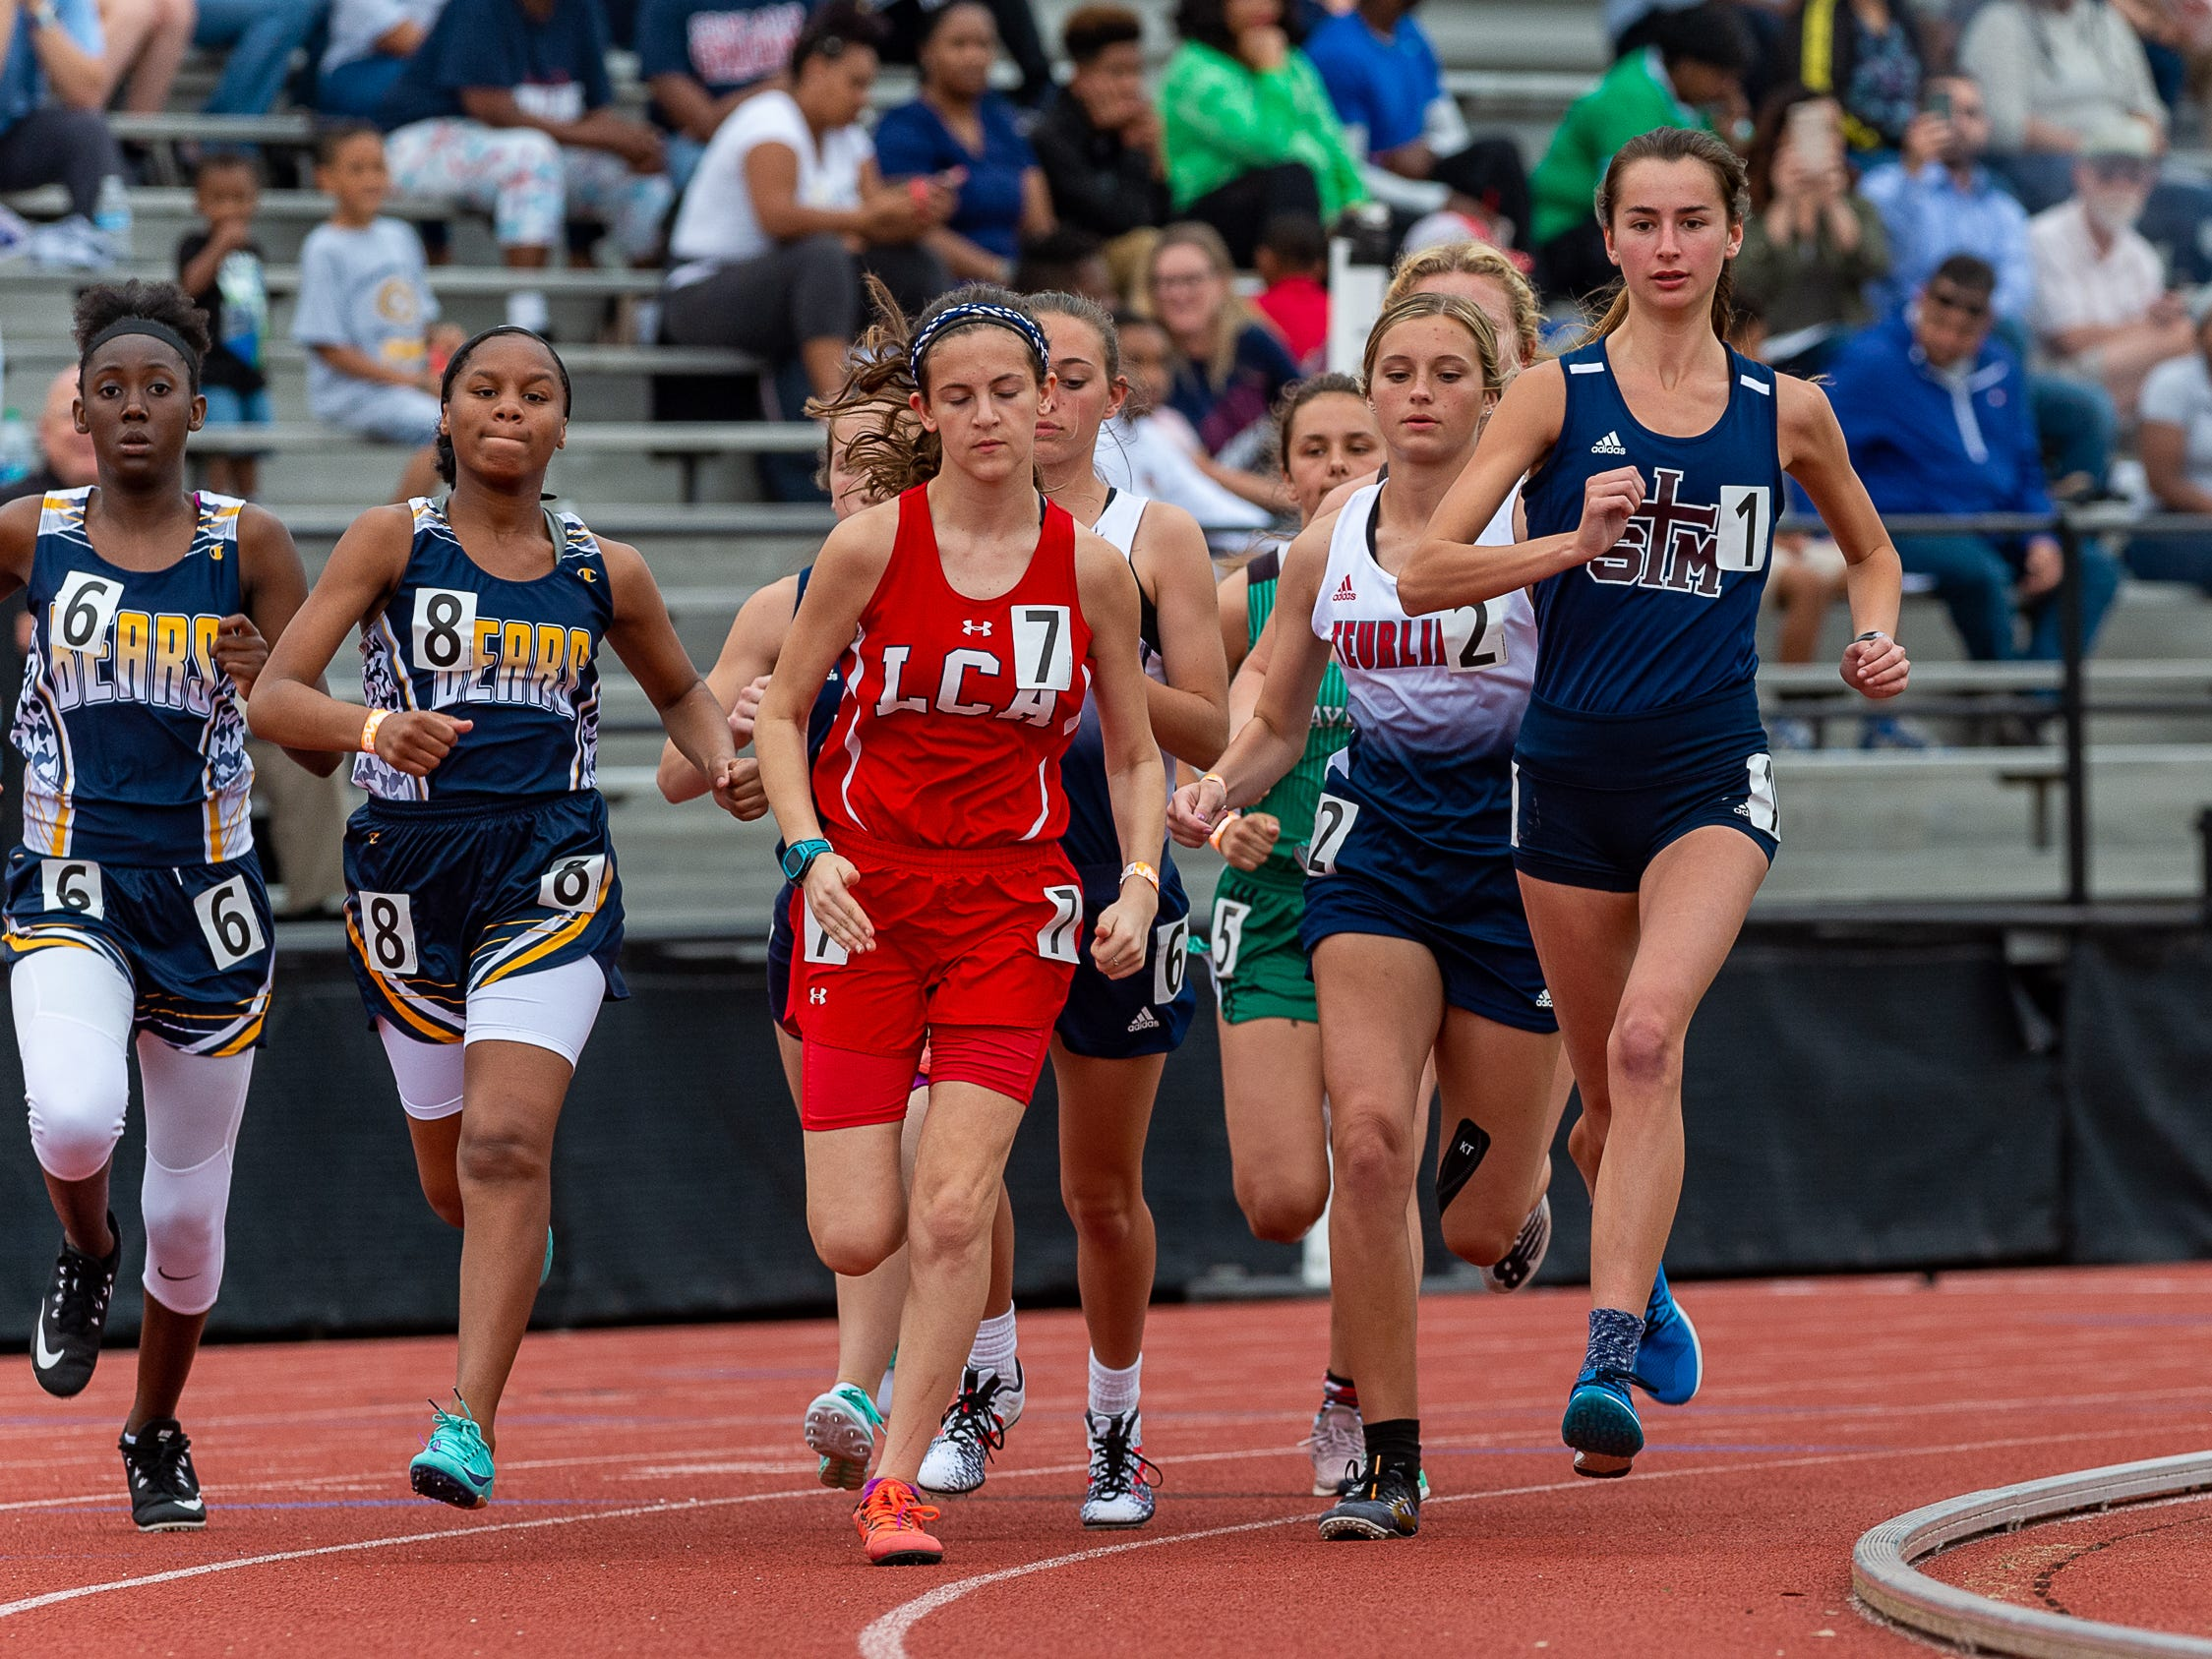 Mia Parker leads from start to finish and wins the 1600m run at The 2019 Beaver Club Relays. Friday, April 5, 2019.